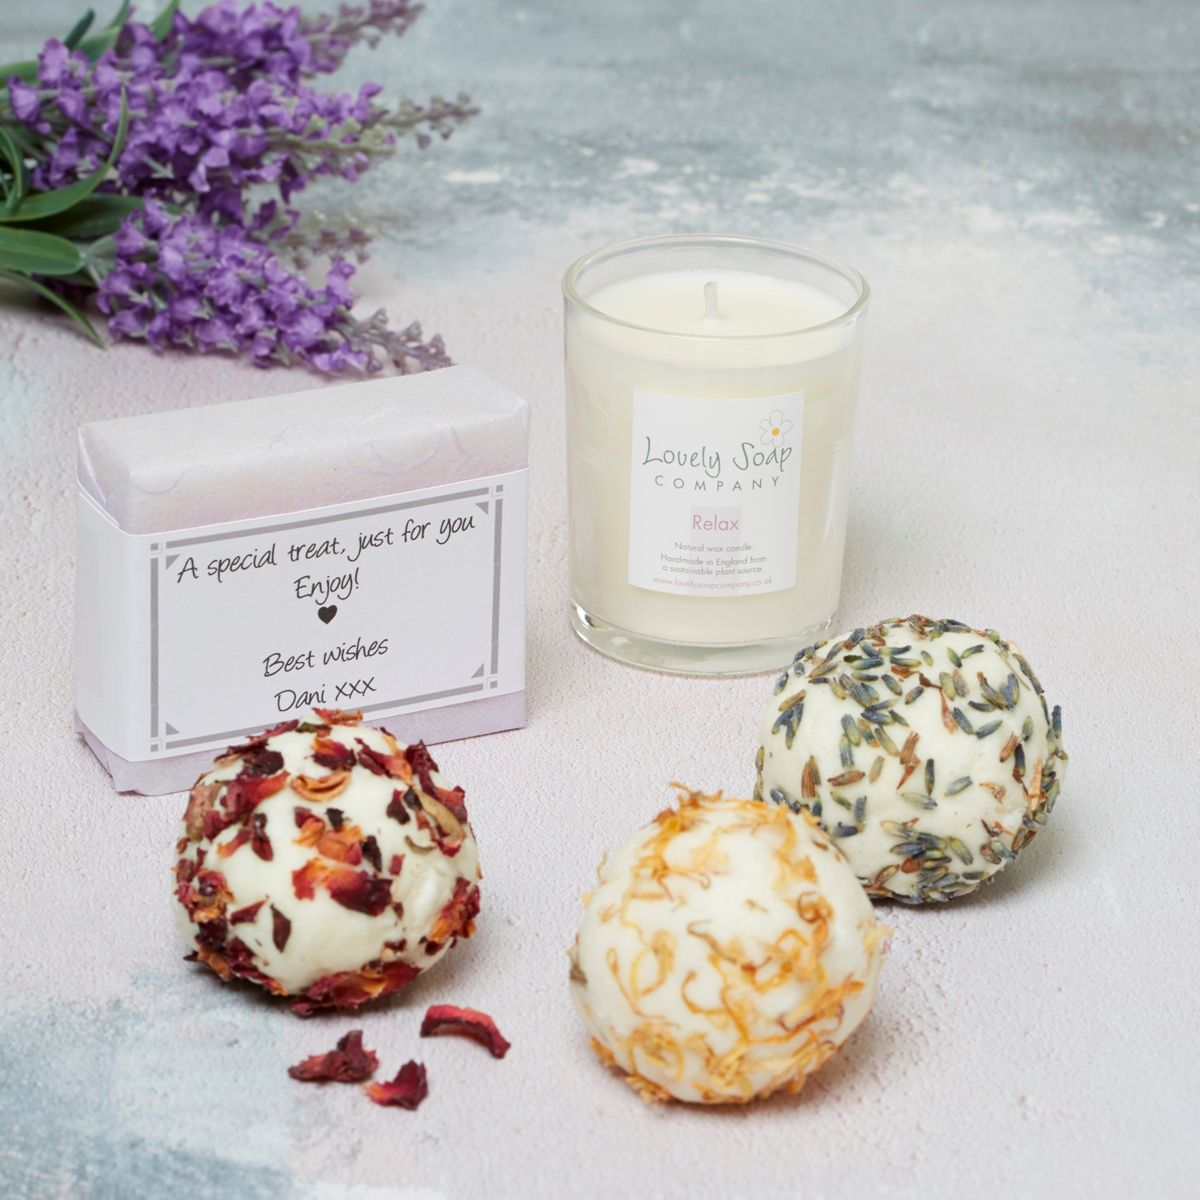 personalised pamper gift by Lovely Soap Co